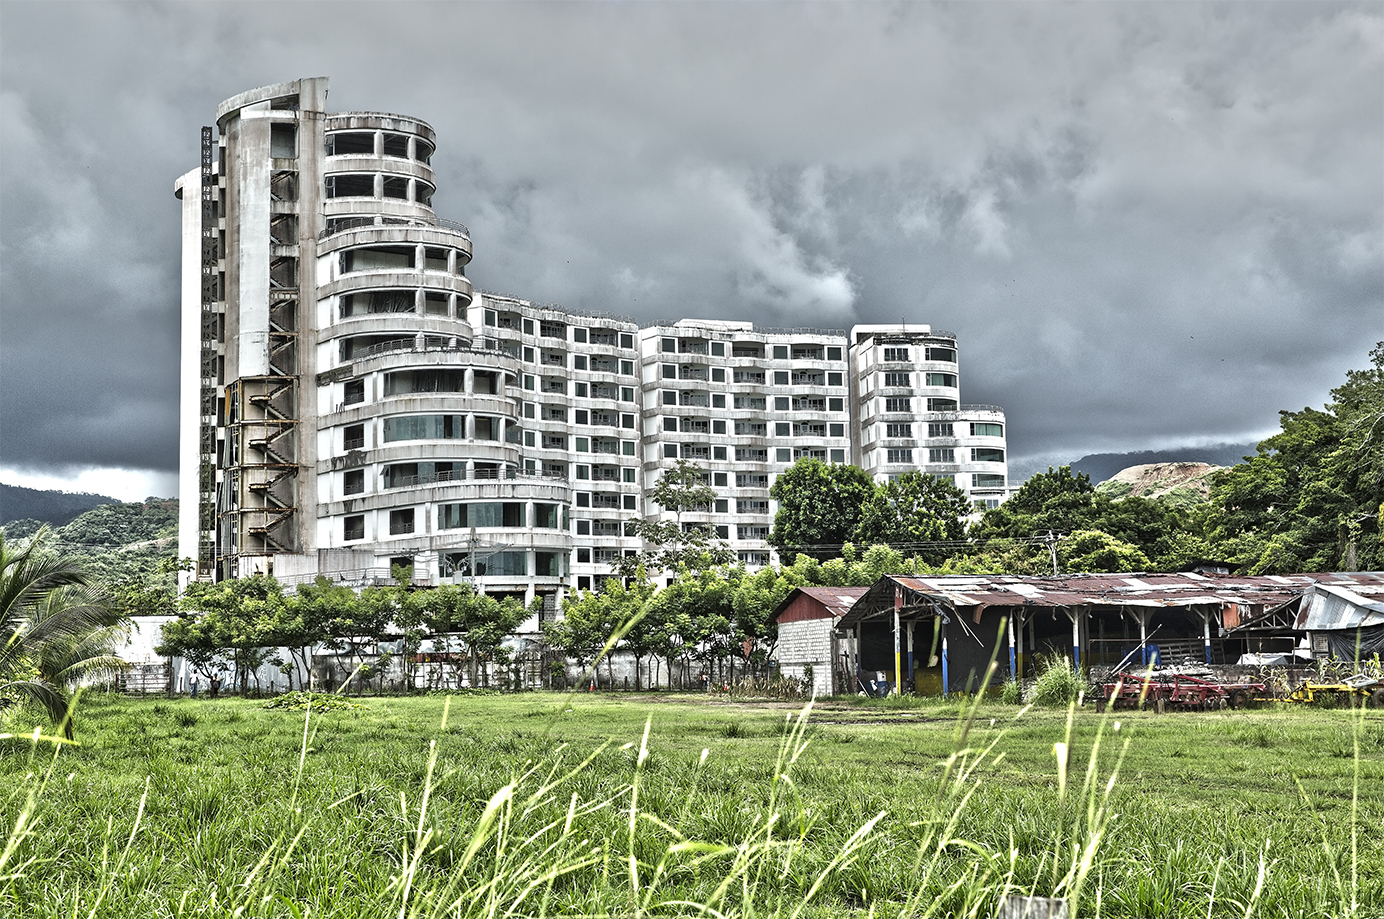 Jaco Beach abandoned high-rise